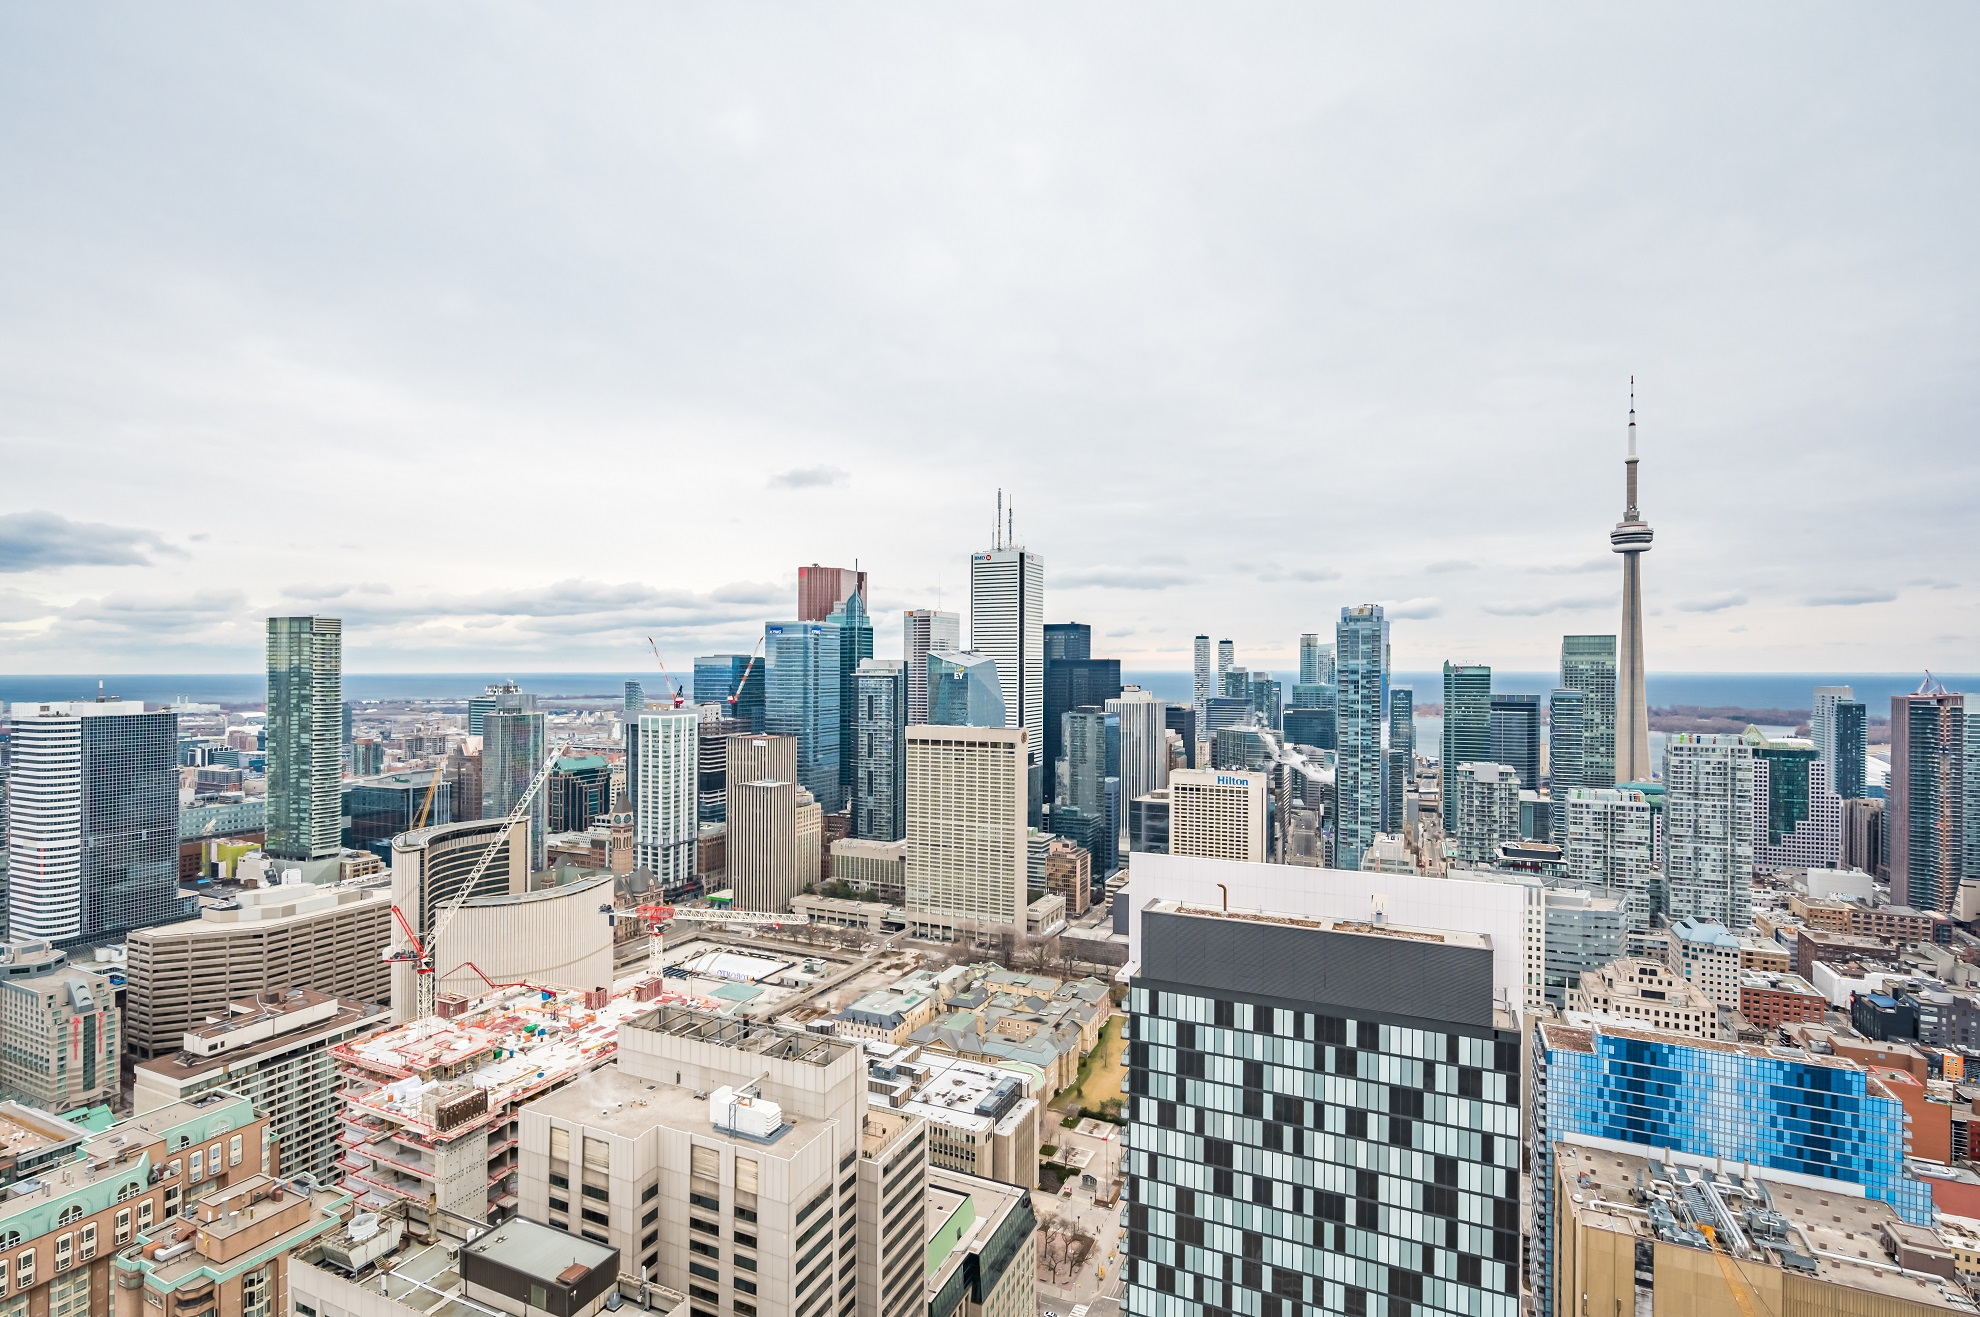 Toronto skyline showing CN Tower, City Hall and other buildings.